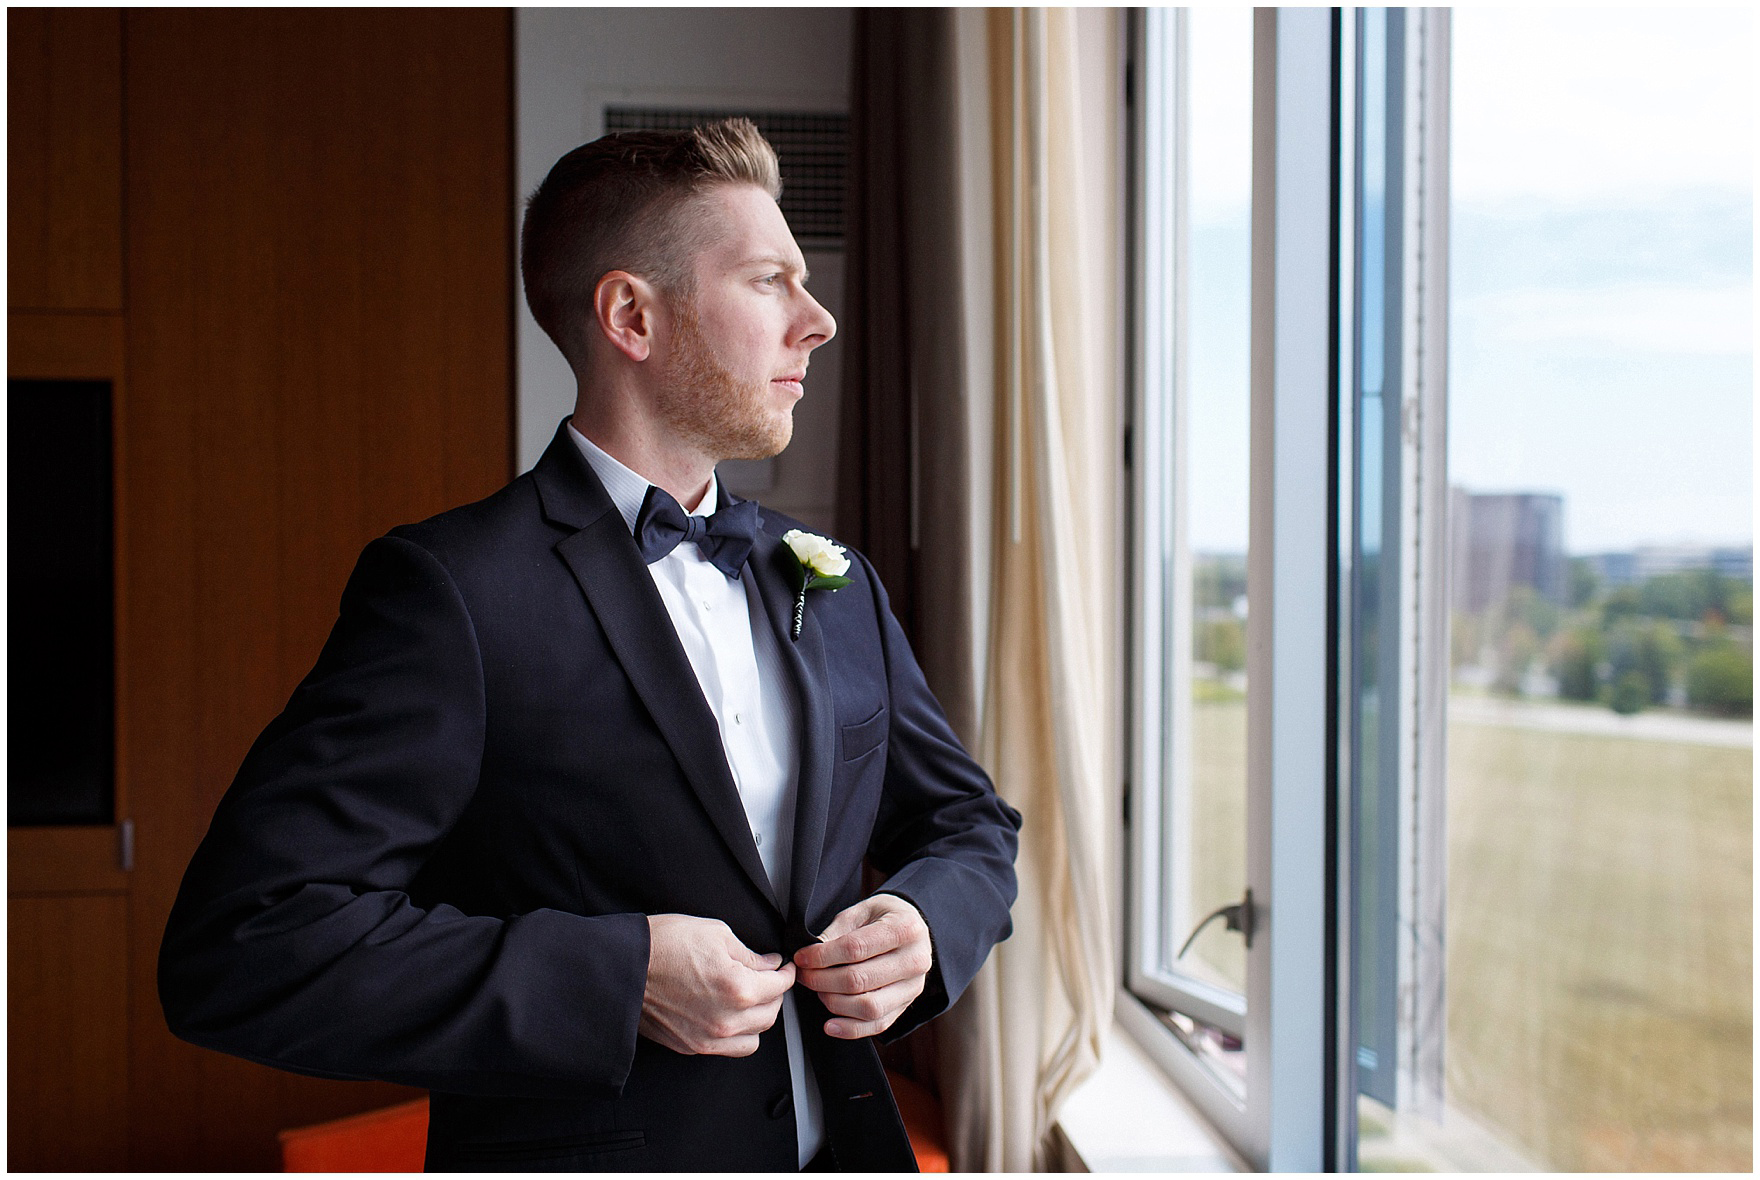 The groom gets ready for a Hotel Arista Naperville wedding.